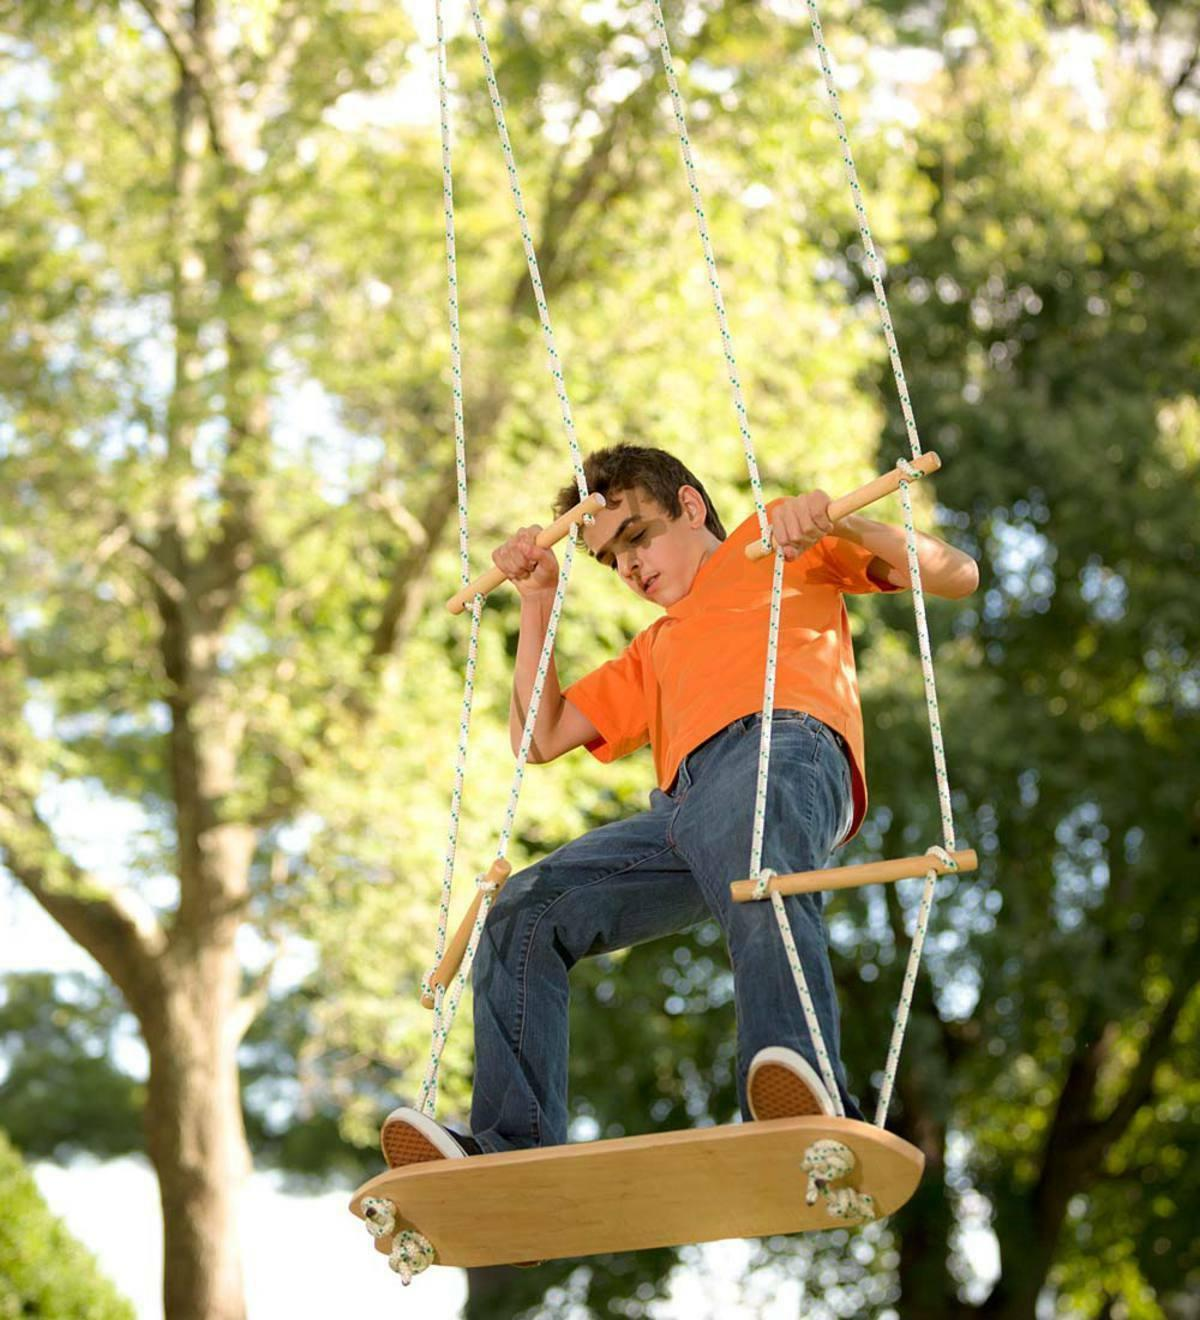 Air Surfer Playground Play Set for NEW BOX